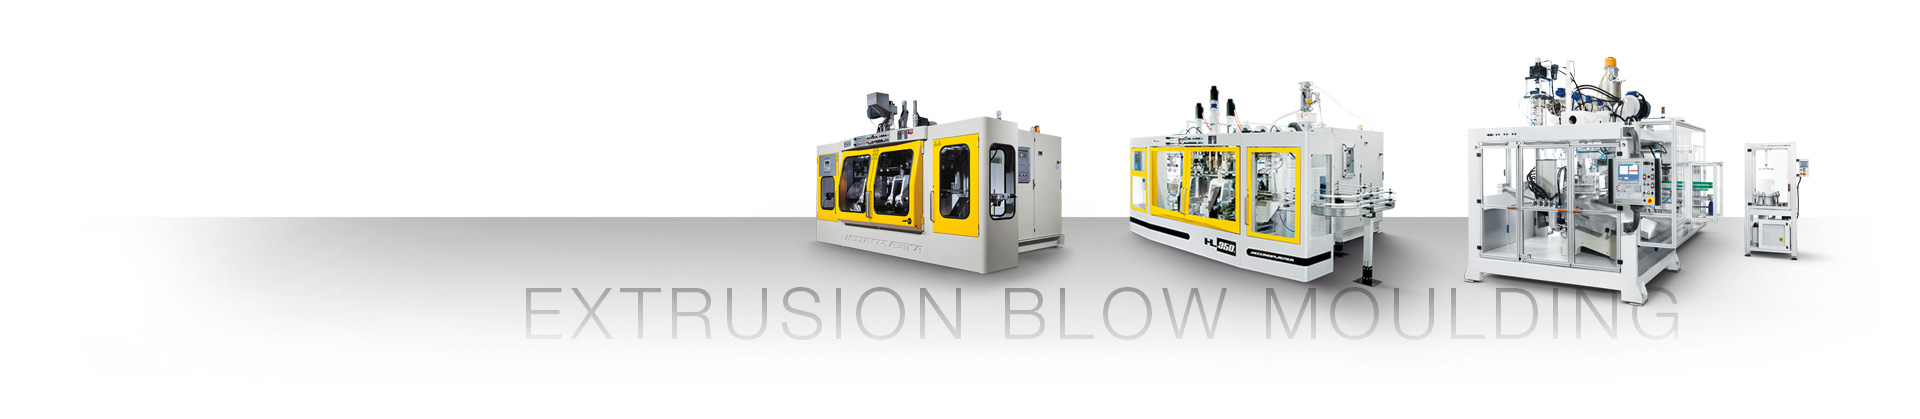 Extrusion Blow Molding and extrusion Blow Moulding